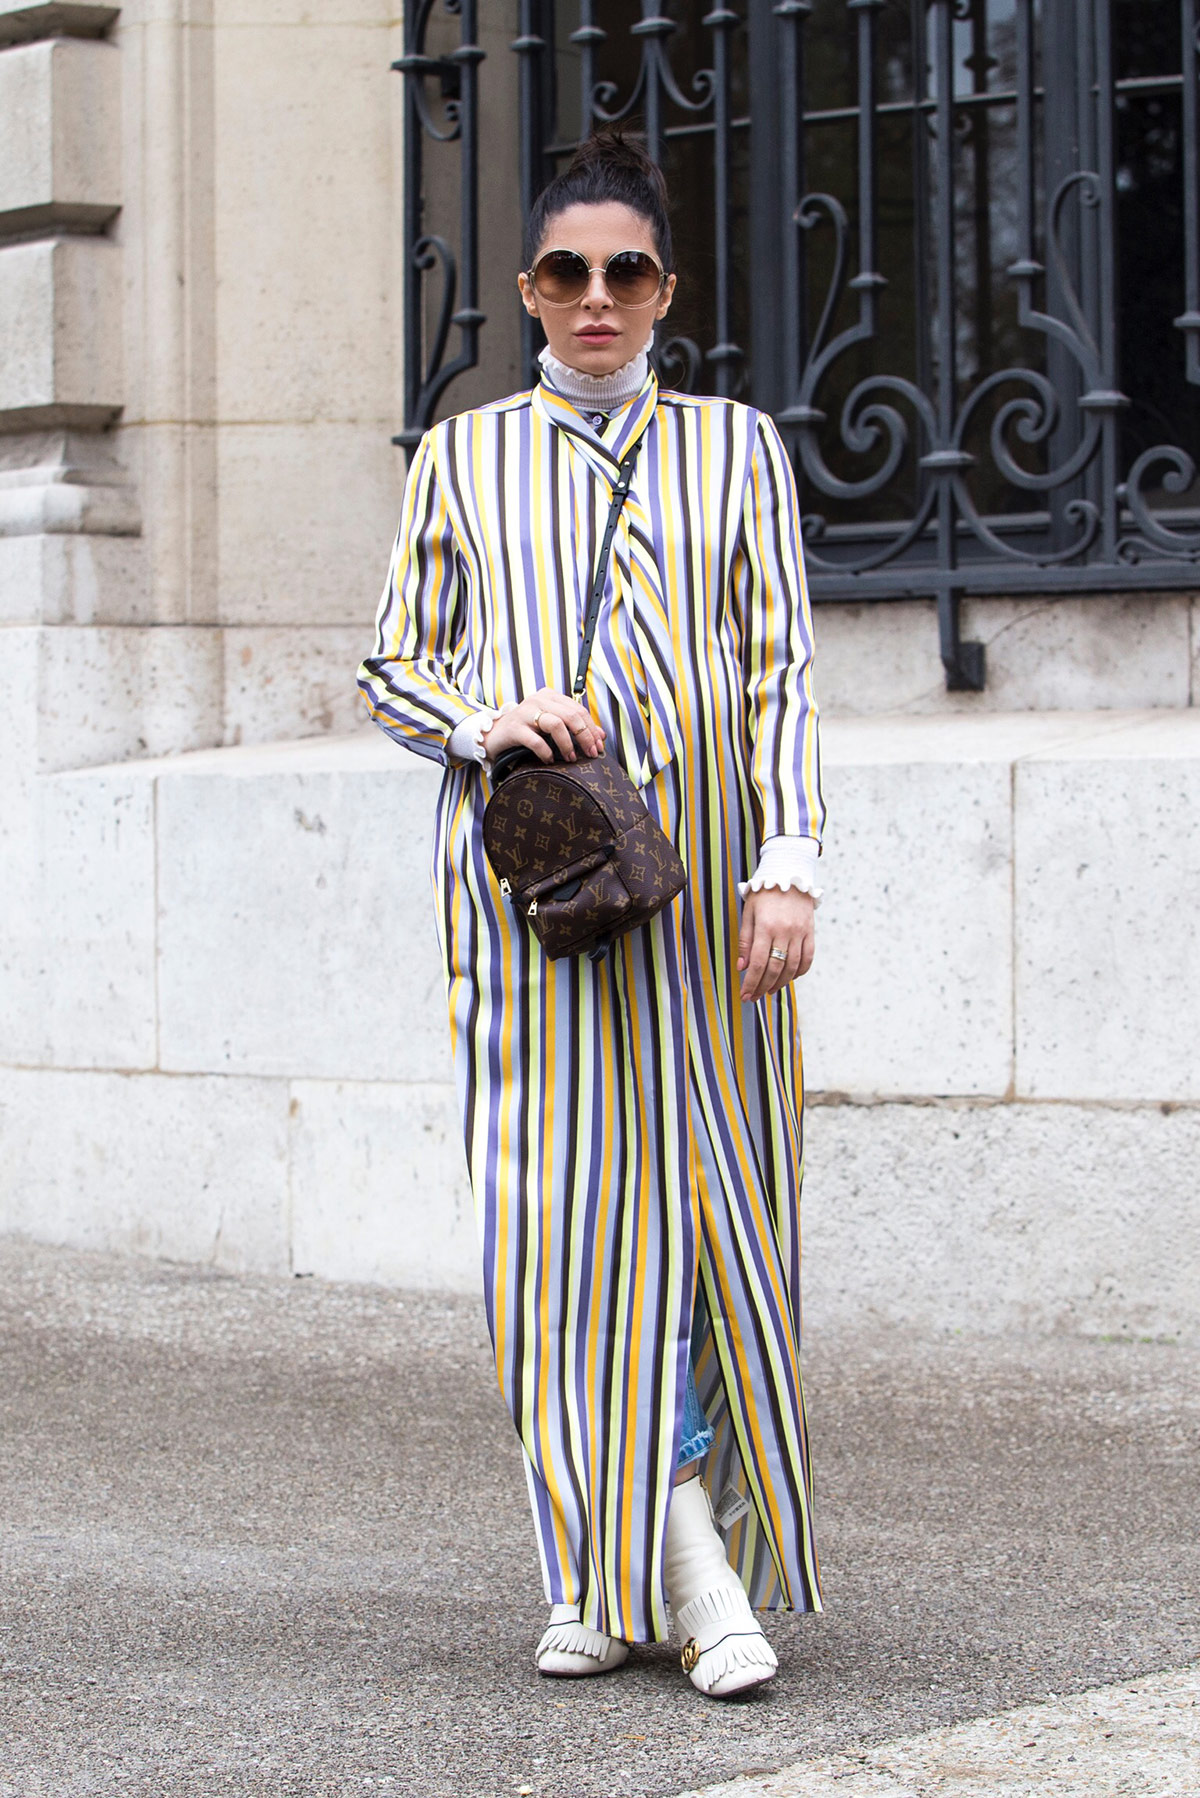 Stella Asteria wearing striped dress with jeans at Paris Fashion Week SS'18